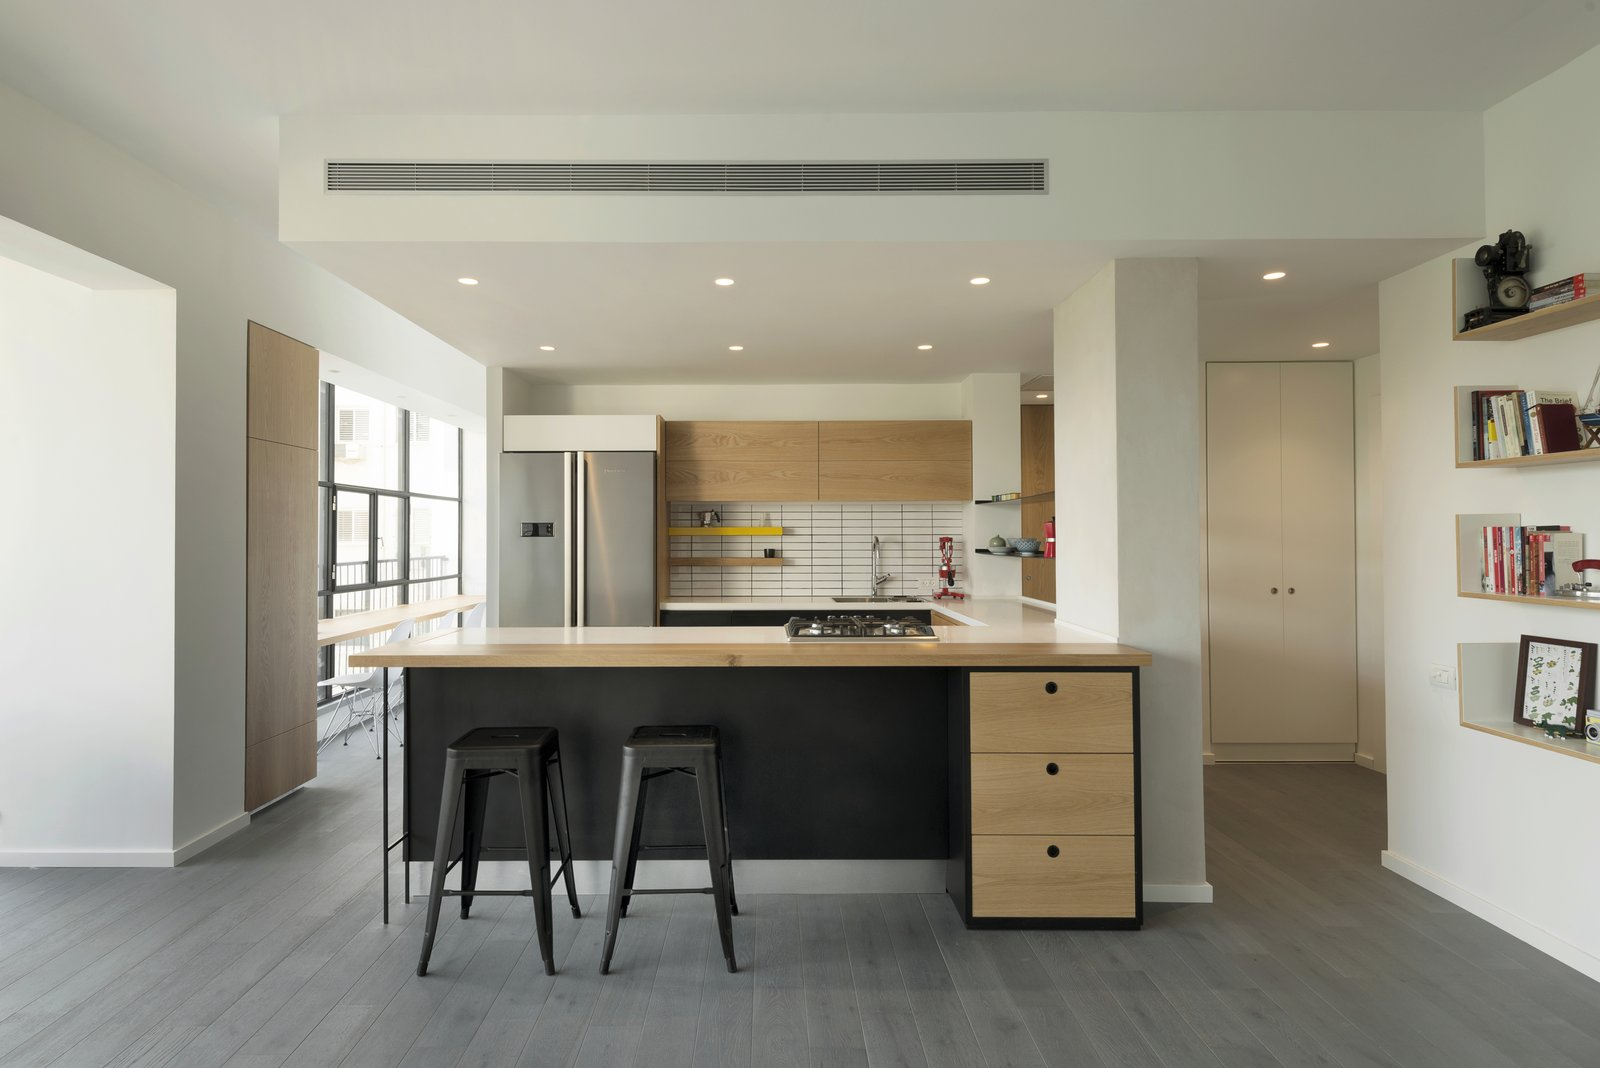 Dining Room, Stools, Bar, Light Hardwood Floor, Shelves, and Recessed Lighting  Photo 7 of 14 in Graphic Design Guides an Apartment Renovation in Tel Aviv